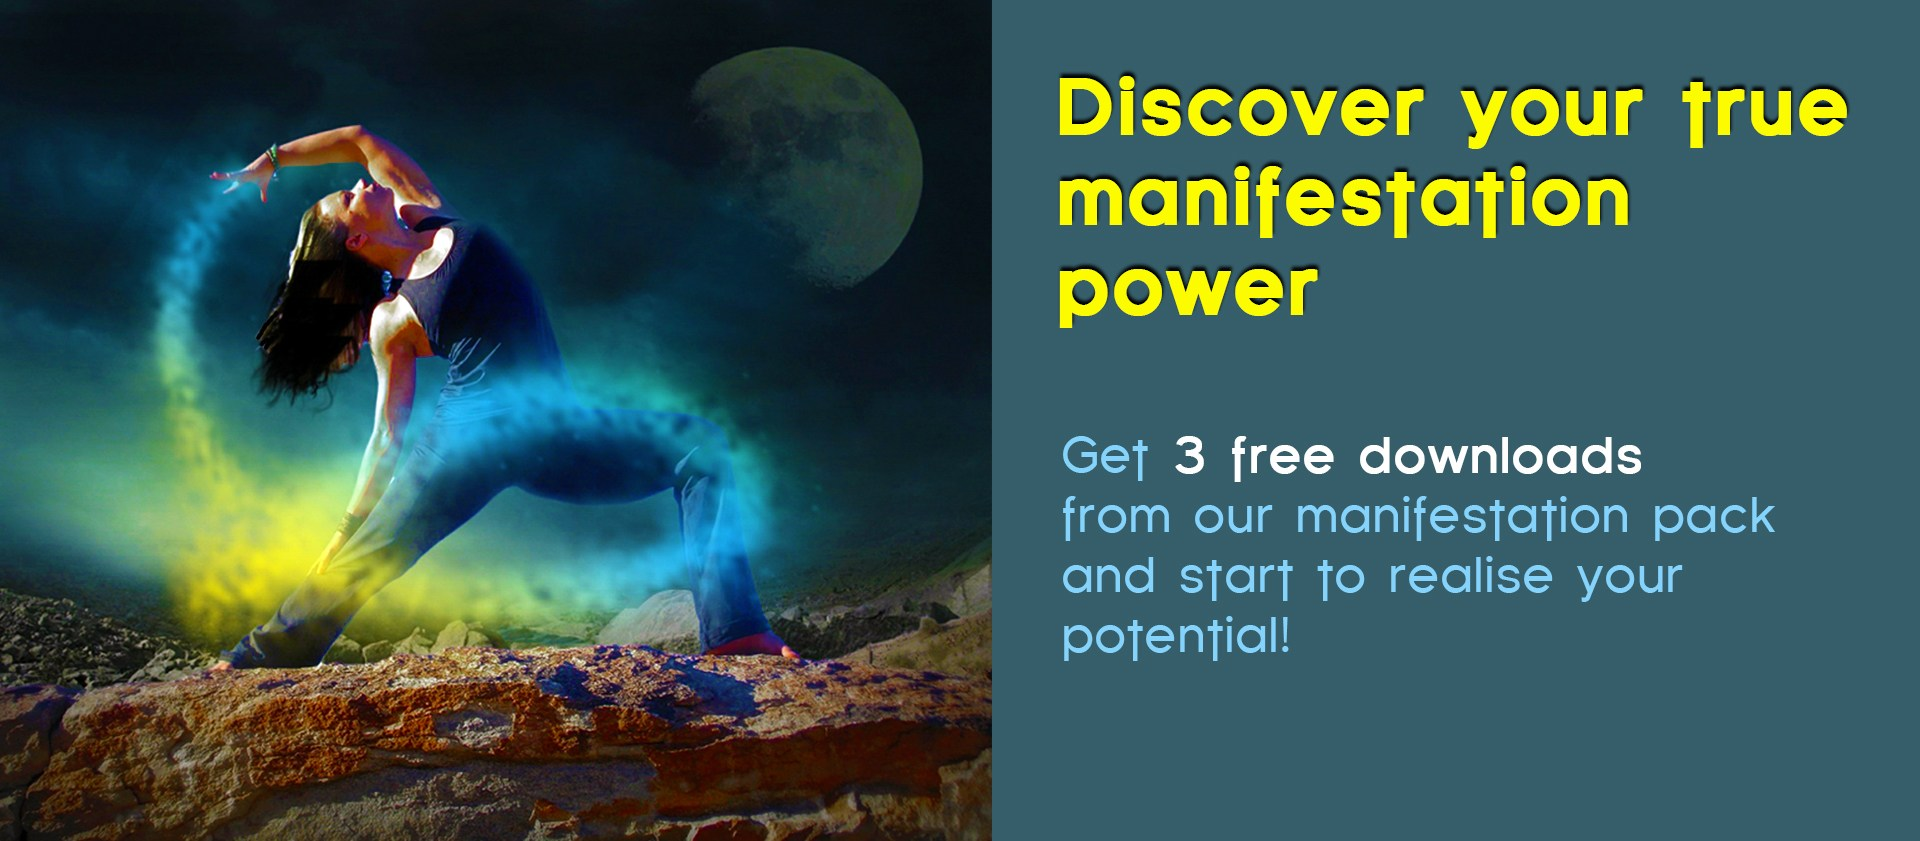 discover-your-true-manifestation-power.jpg